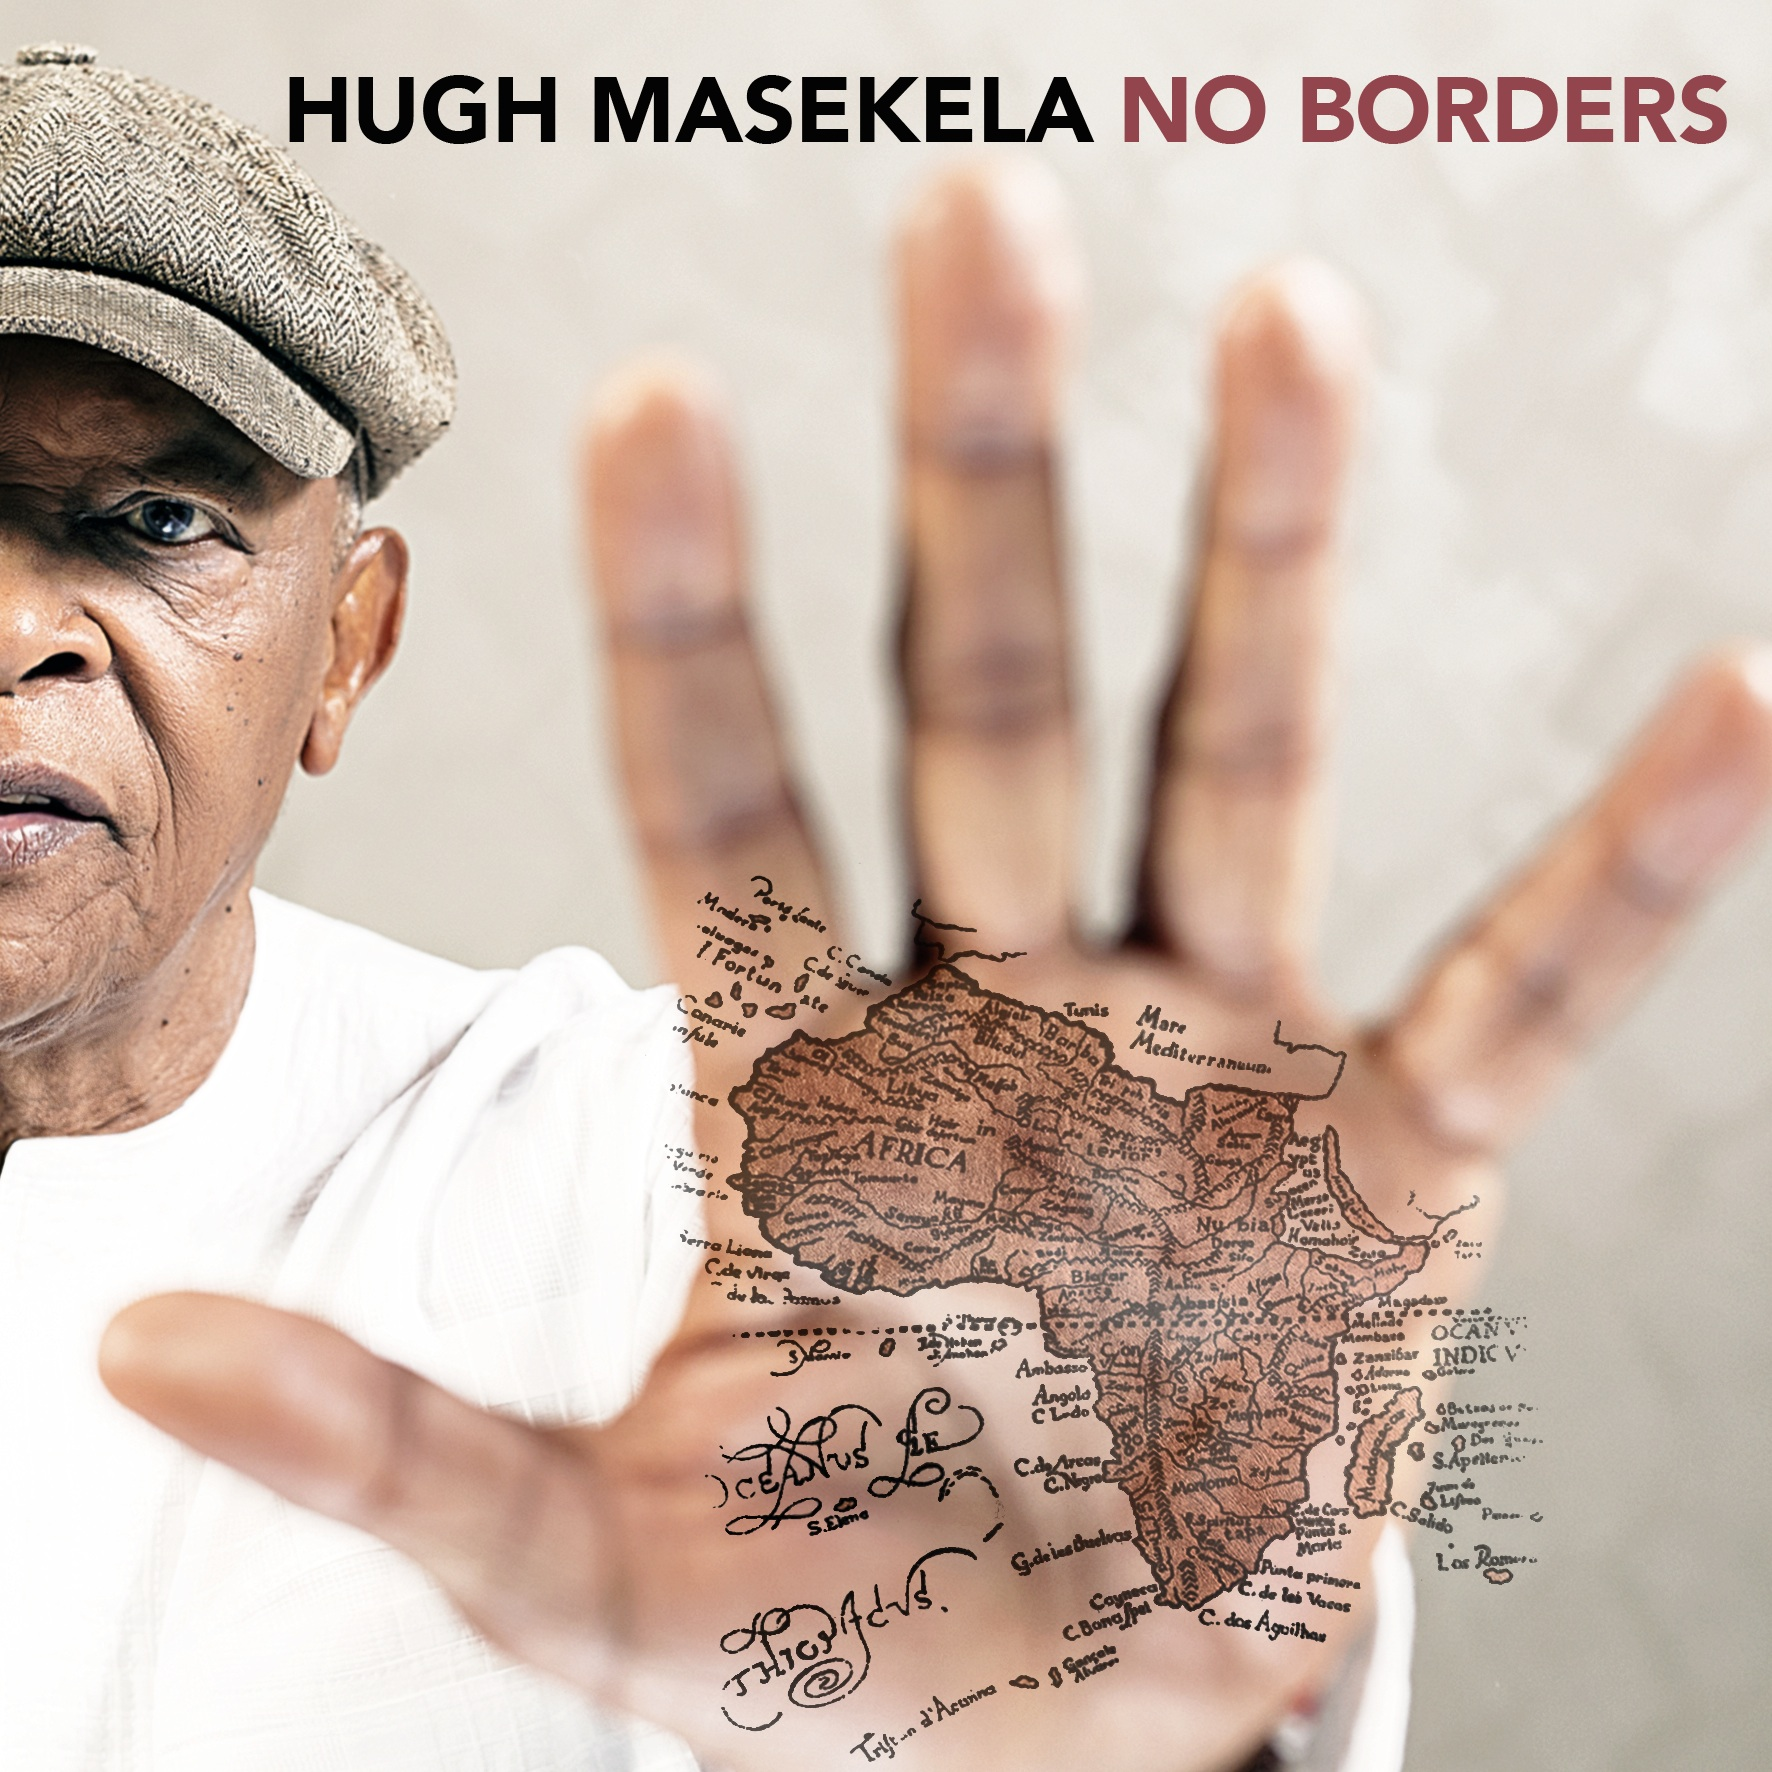 hugh-masekela-no-borders-album-coverhi-res